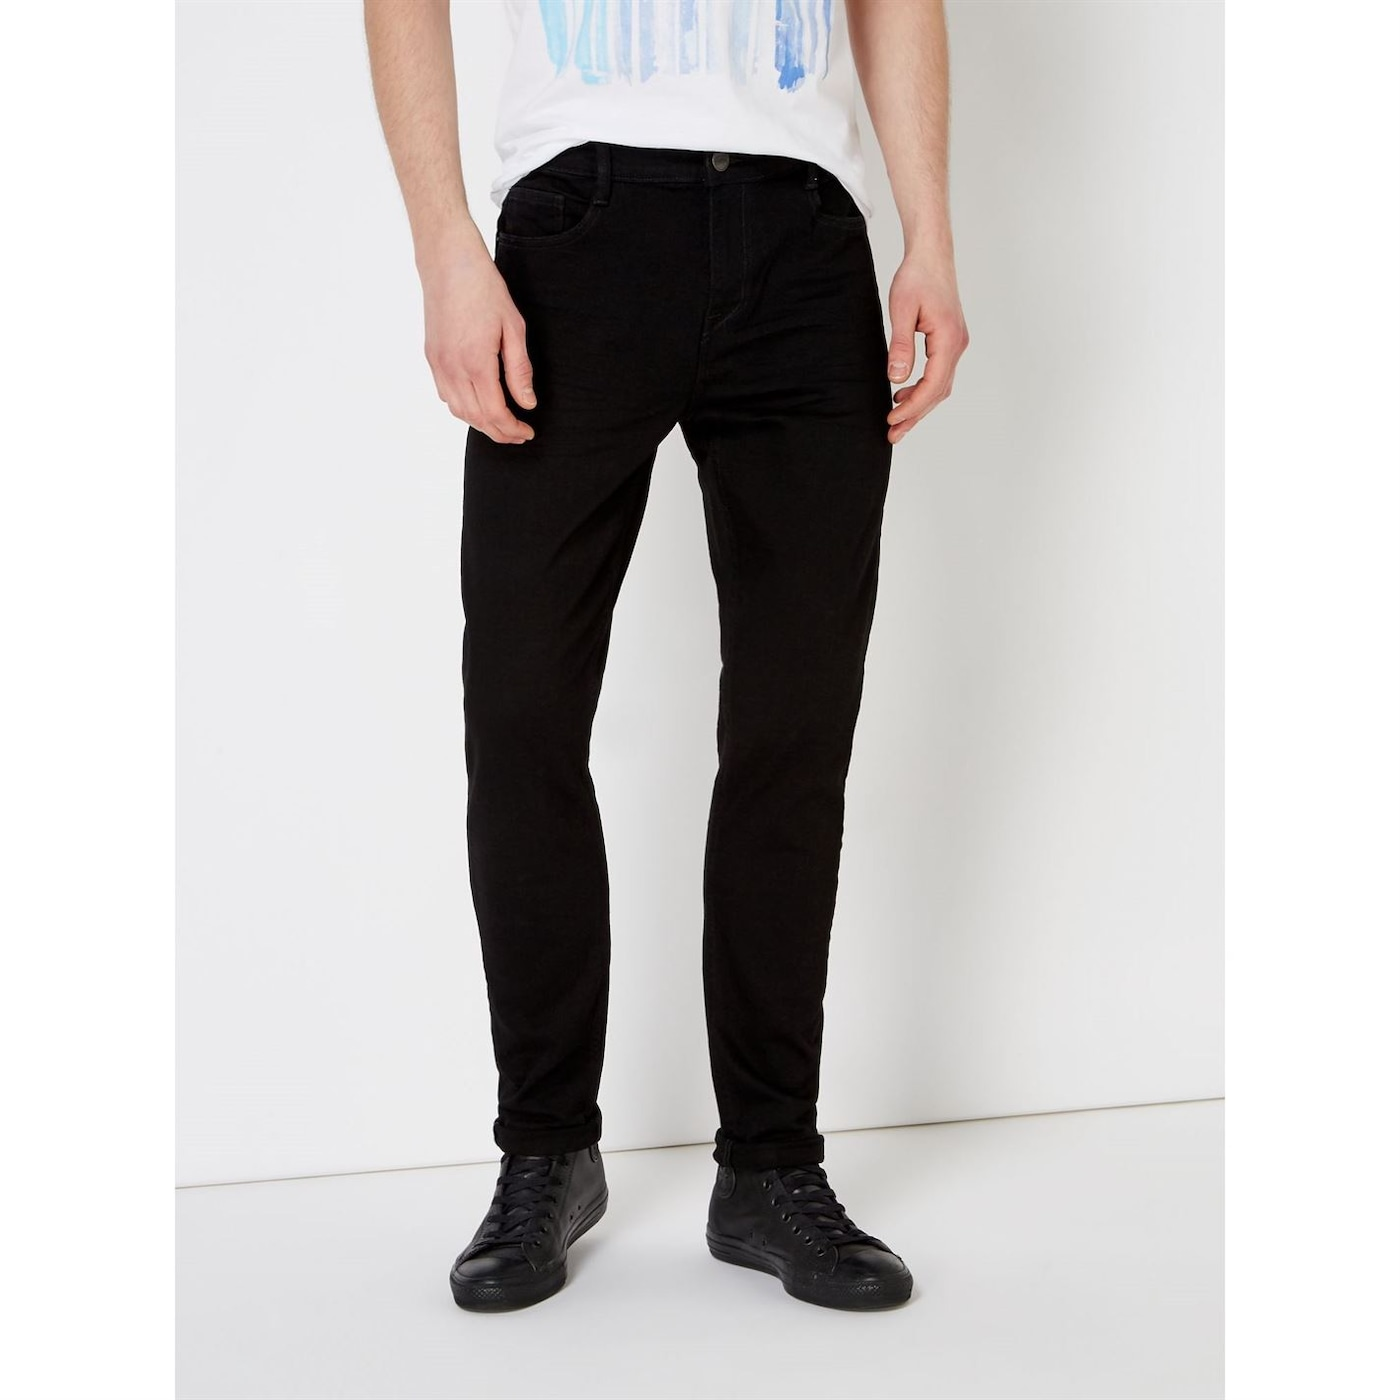 Criminal Skinny Fit Stretch Black Jeans